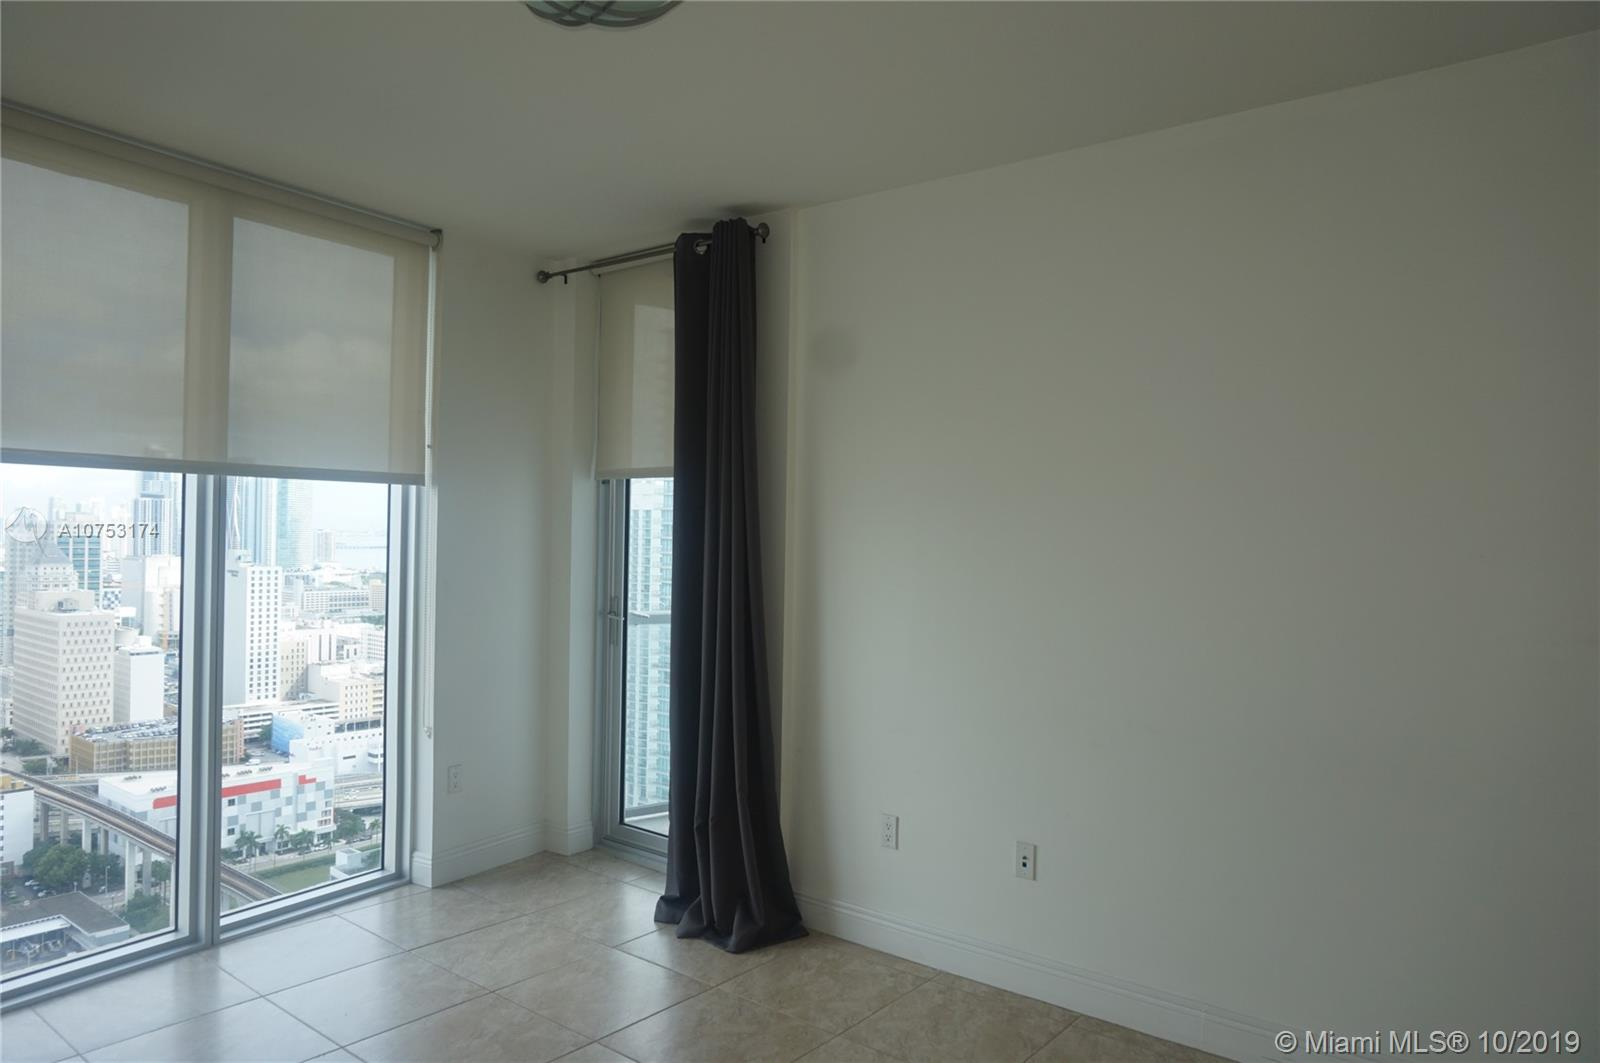 185 7th st-3811 miami-fl-33130-a10753174-Pic25